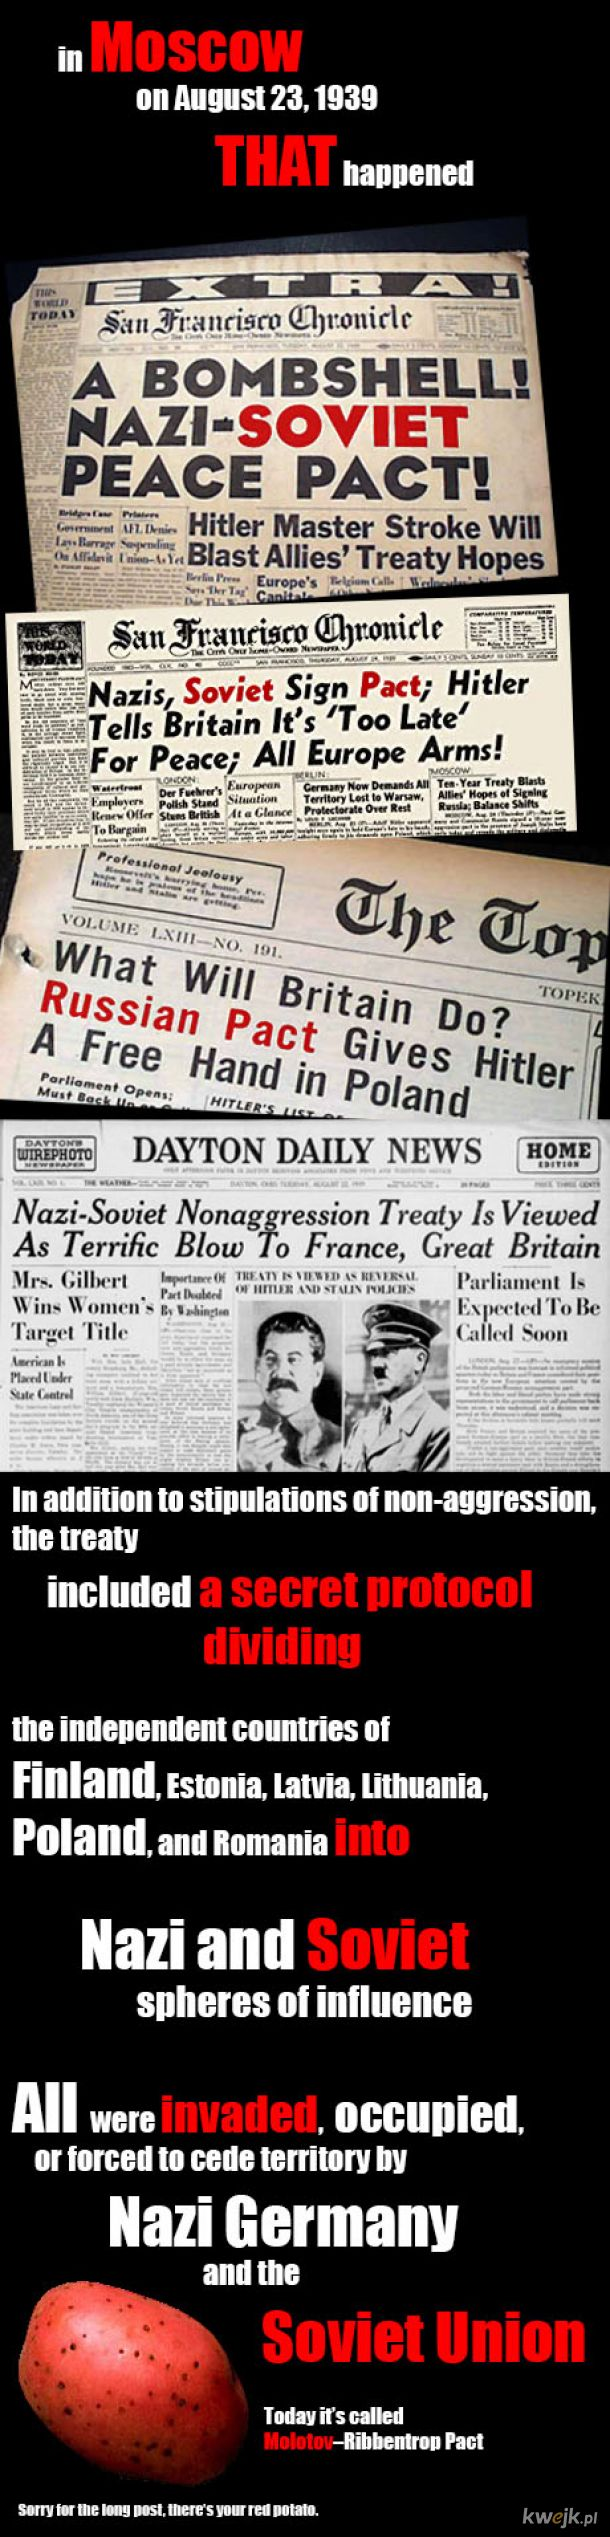 Know the Truth: 1939 Nazi-Soviet Pact